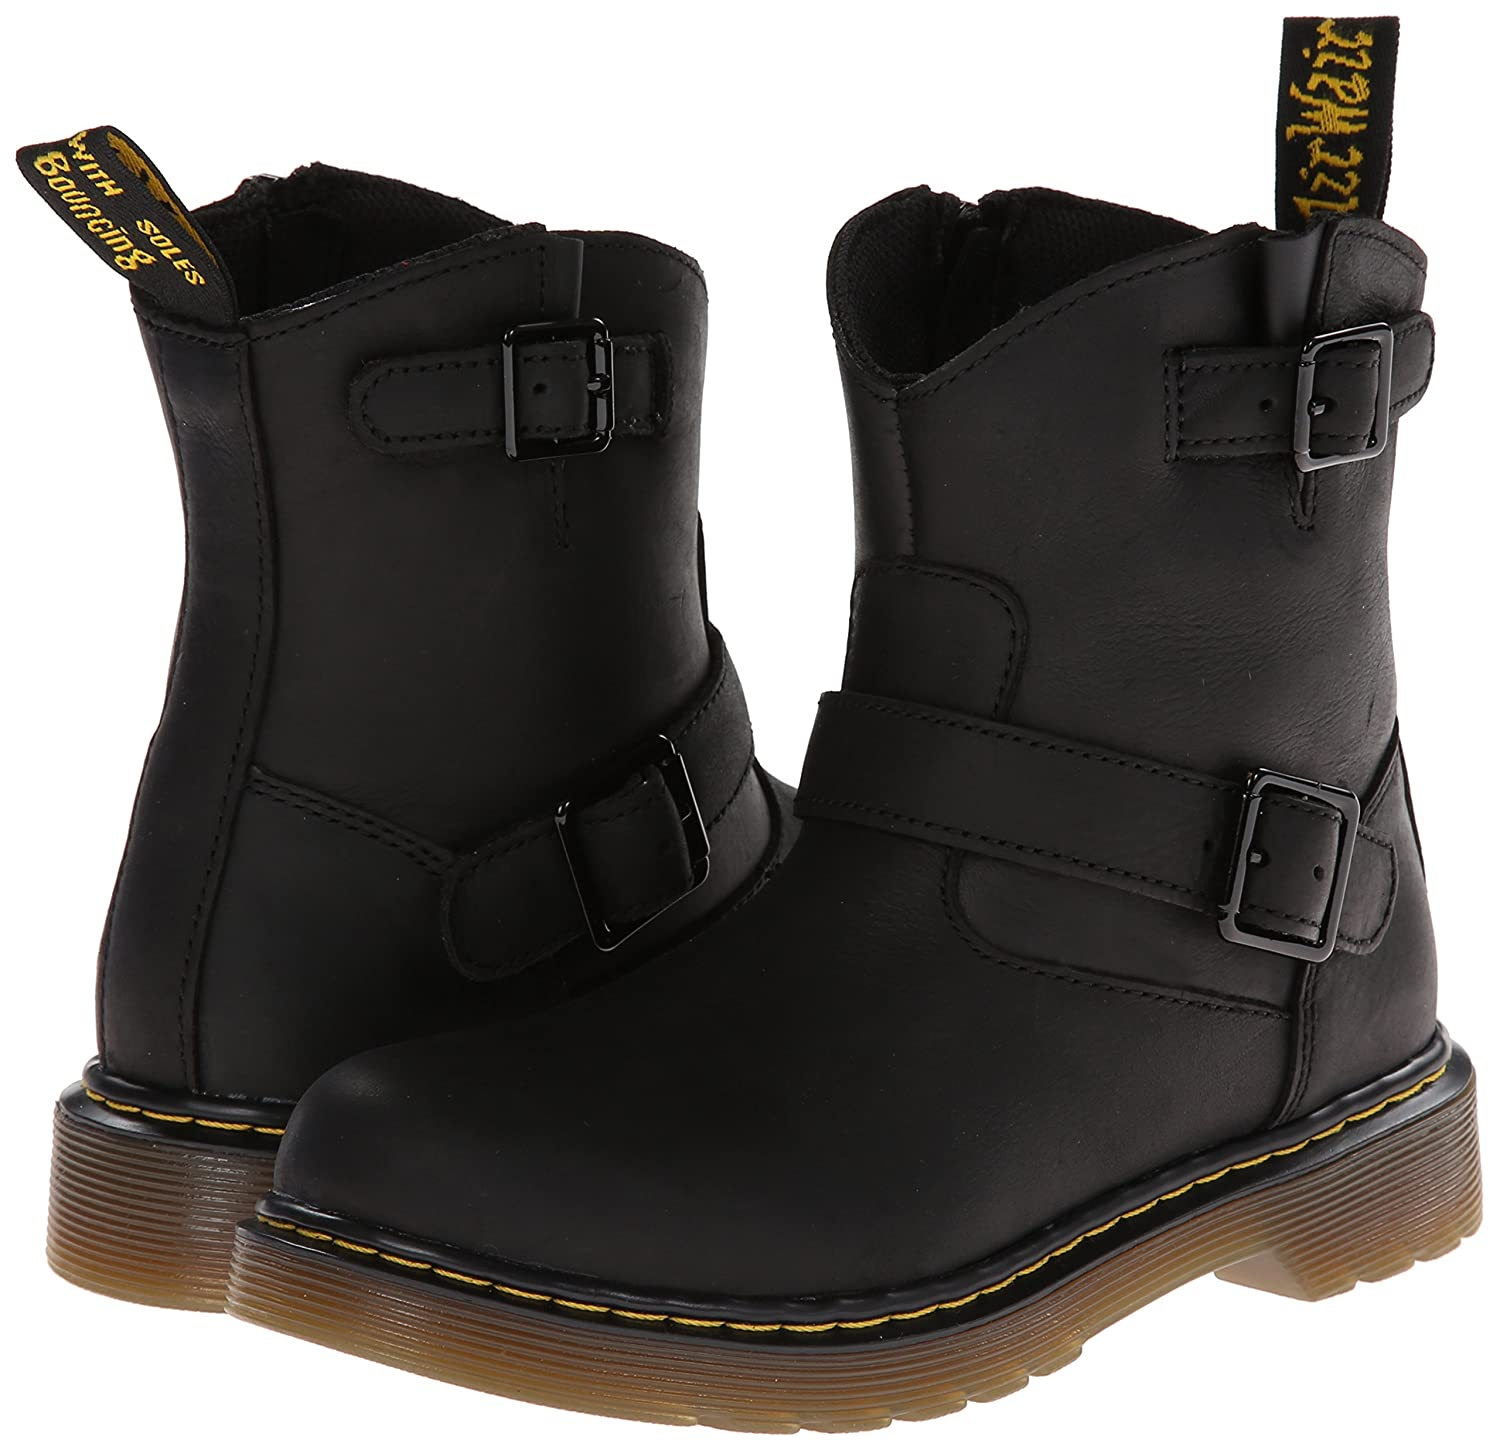 Dr. Martens Lydia, Boots mixte enfant - Noir (Black Burnished Wyoming), 34 EU (2 UK)